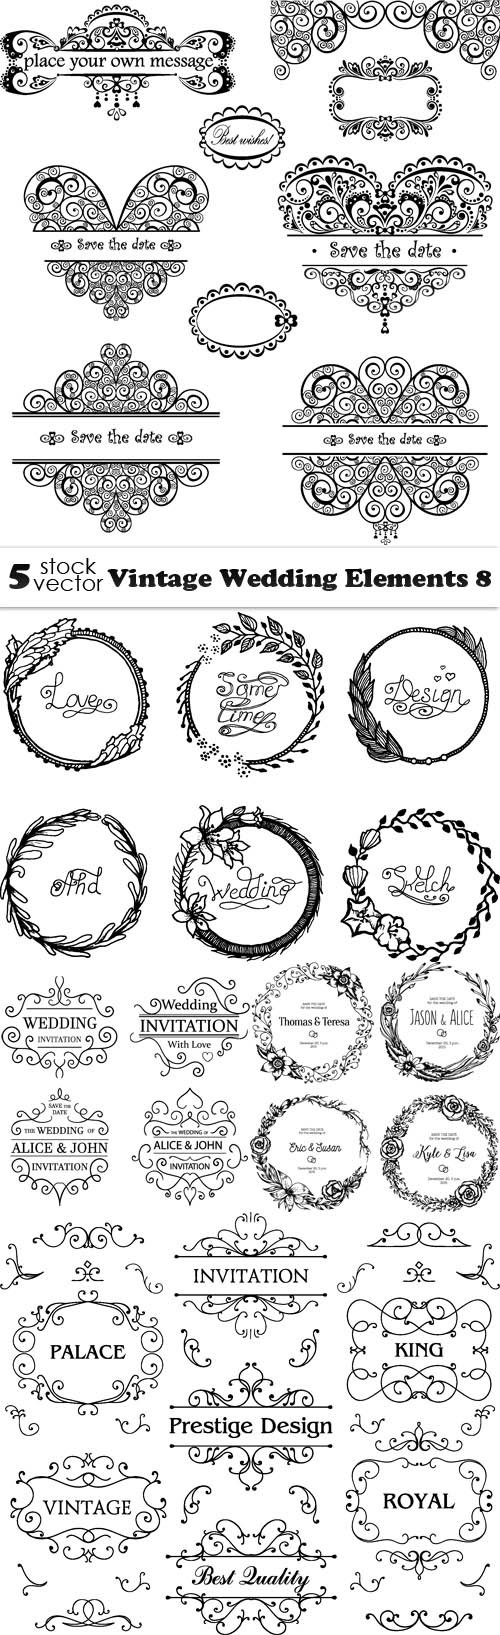 Vectors - Vintage Wedding Elements 8